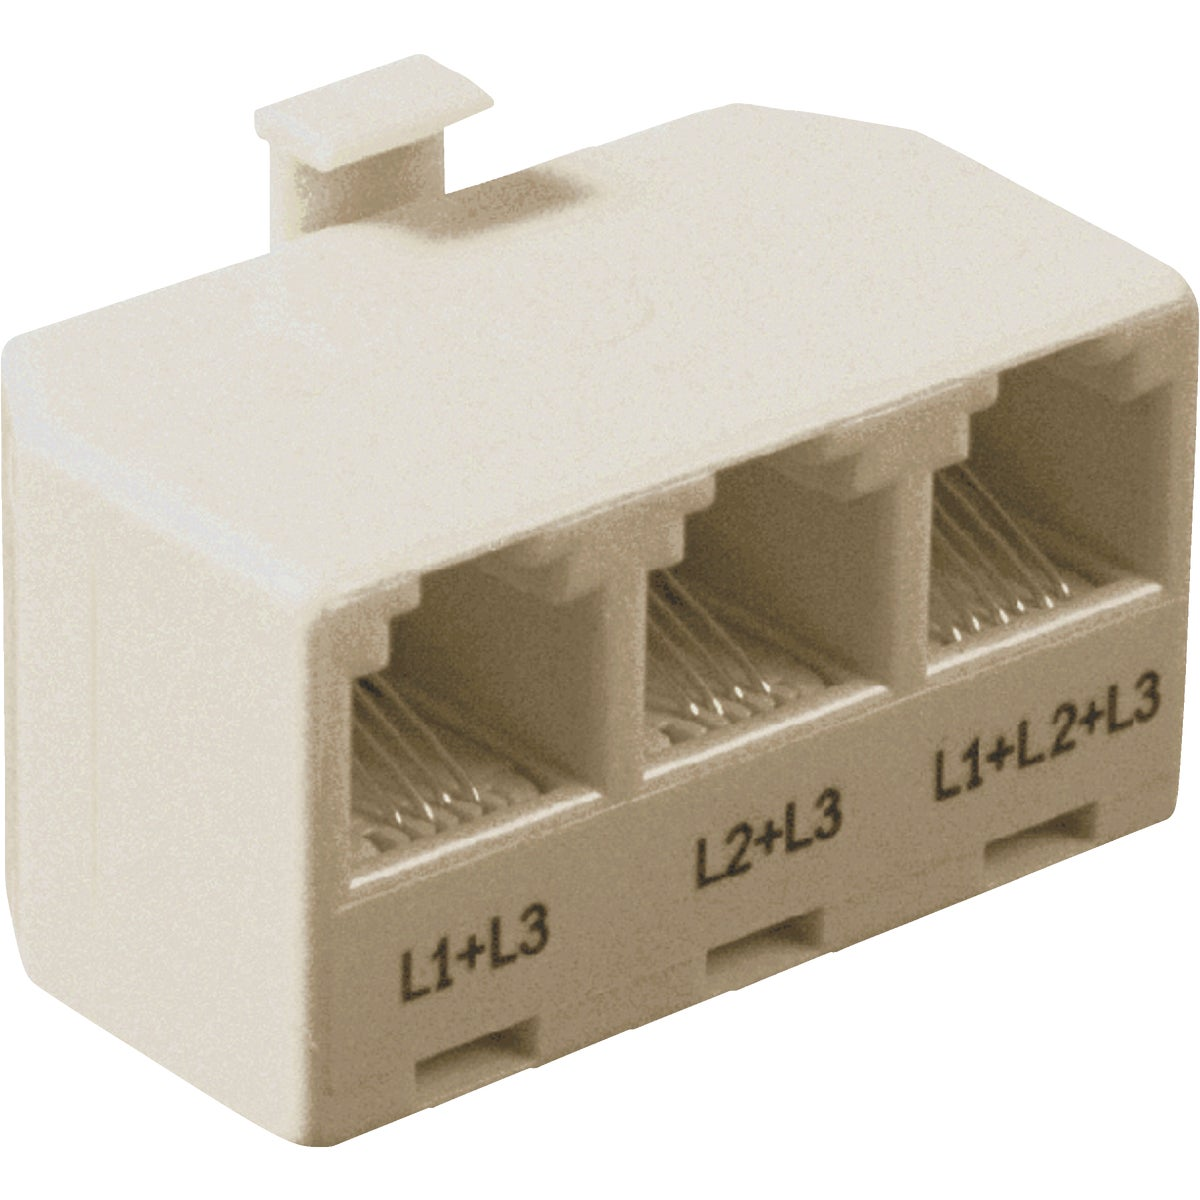 3-LINE ALM PHONE ADAPTER